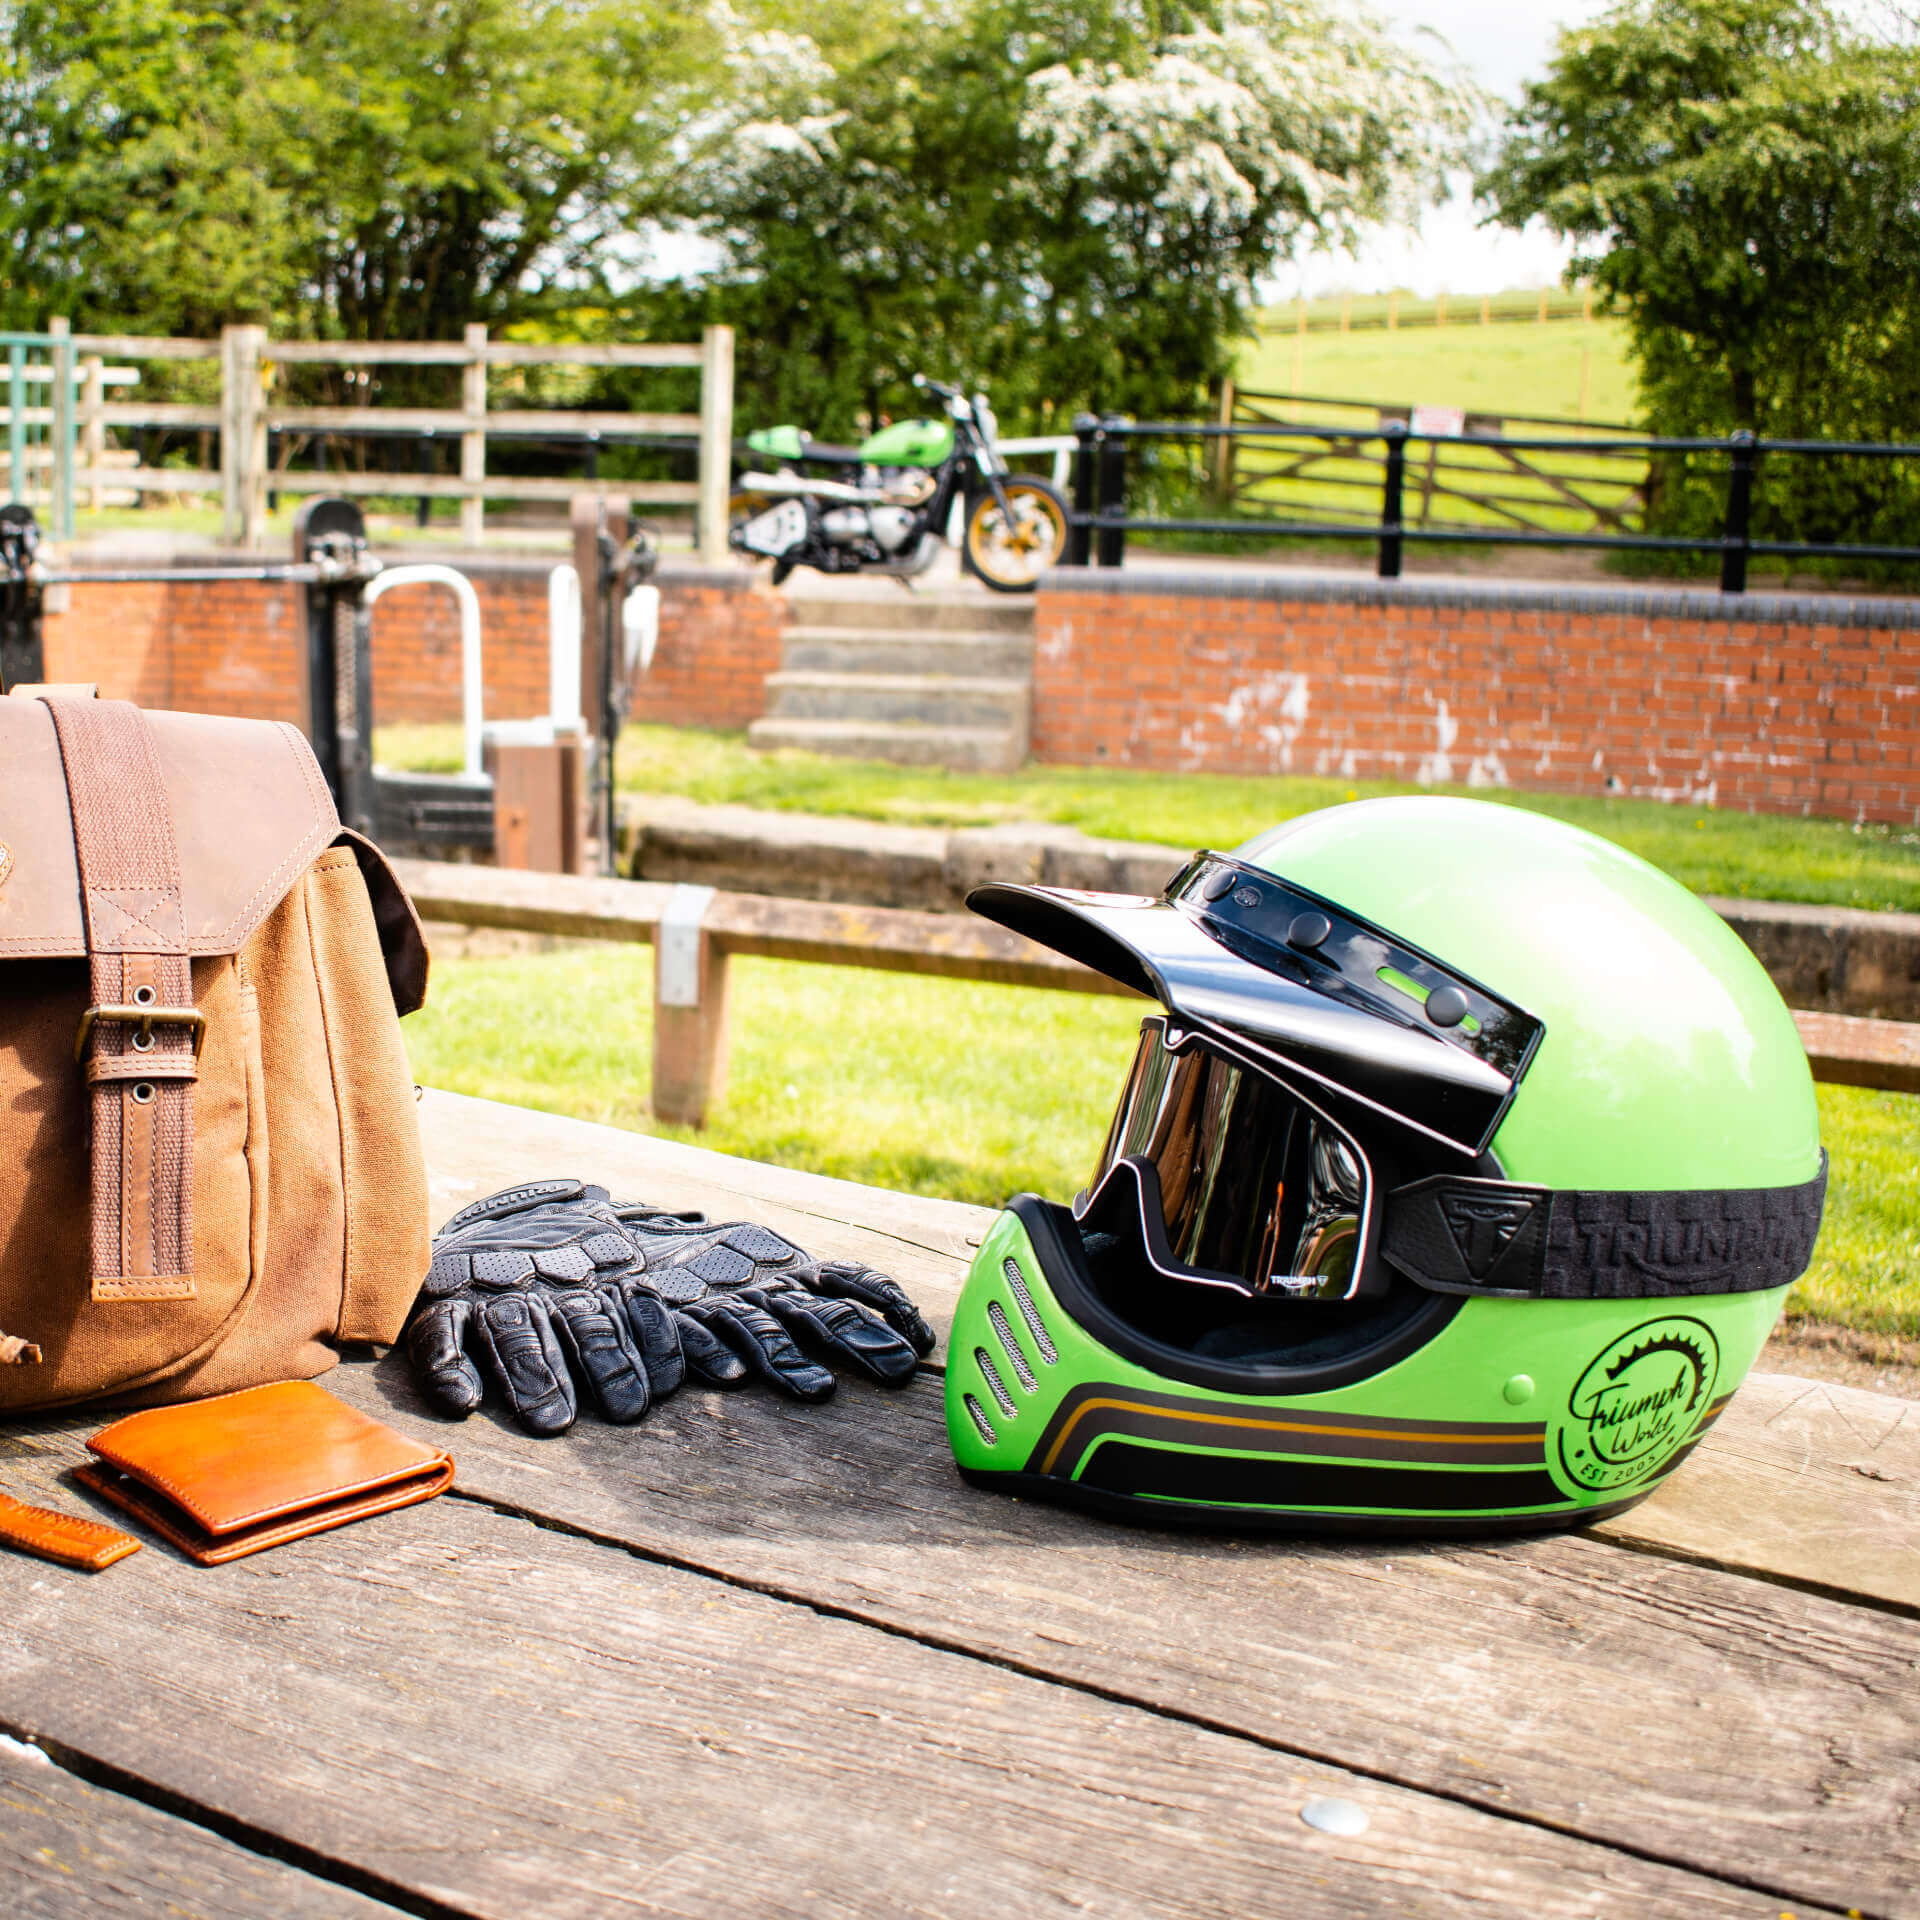 Motorbike helmet and accessories